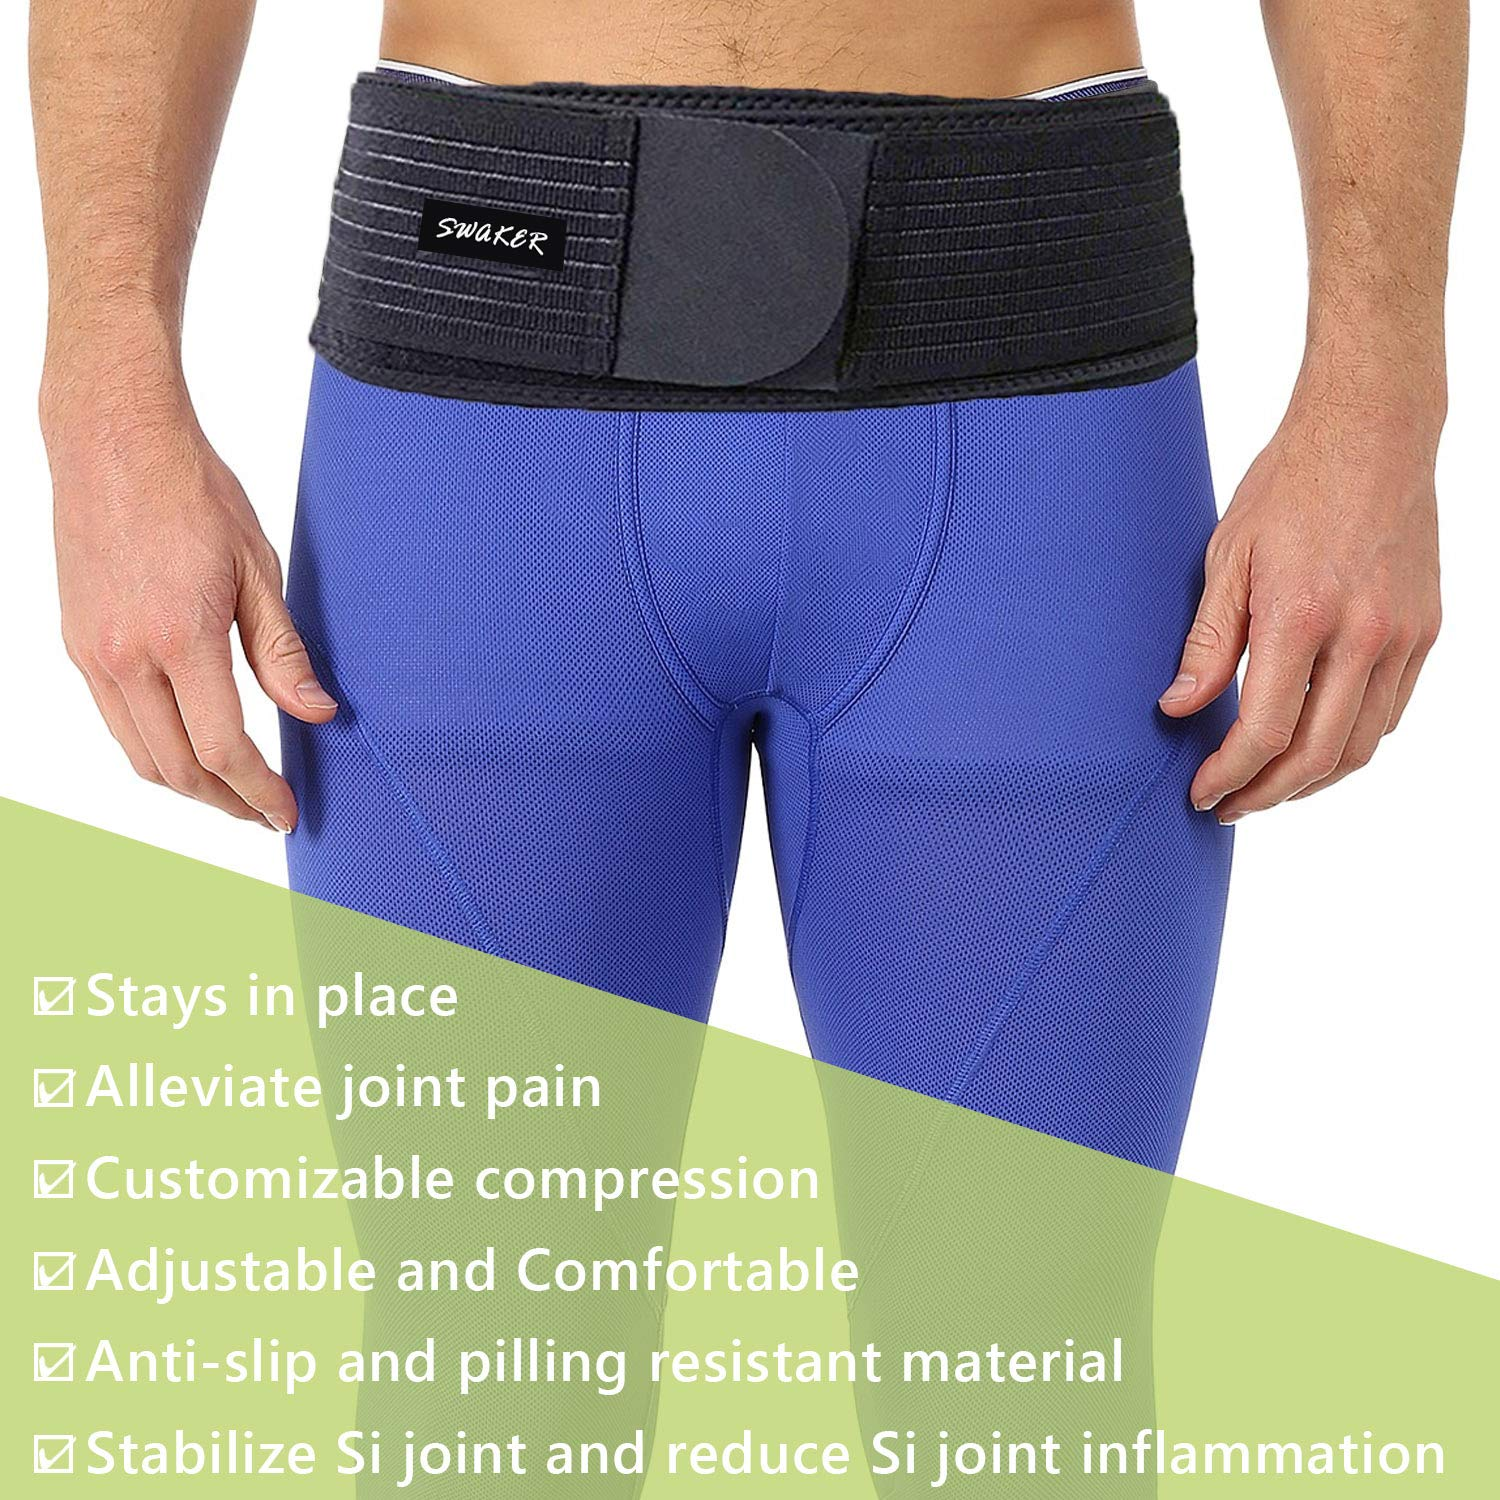 Si Belt for Women and Men - Sacroiliac Belt, Stabilize SI Joint   Relieve Sciatic, Pelvic, Lower Back and Leg Pain, Anti-Slip & Pilling-Resistant & Breathable (Black/Regular)